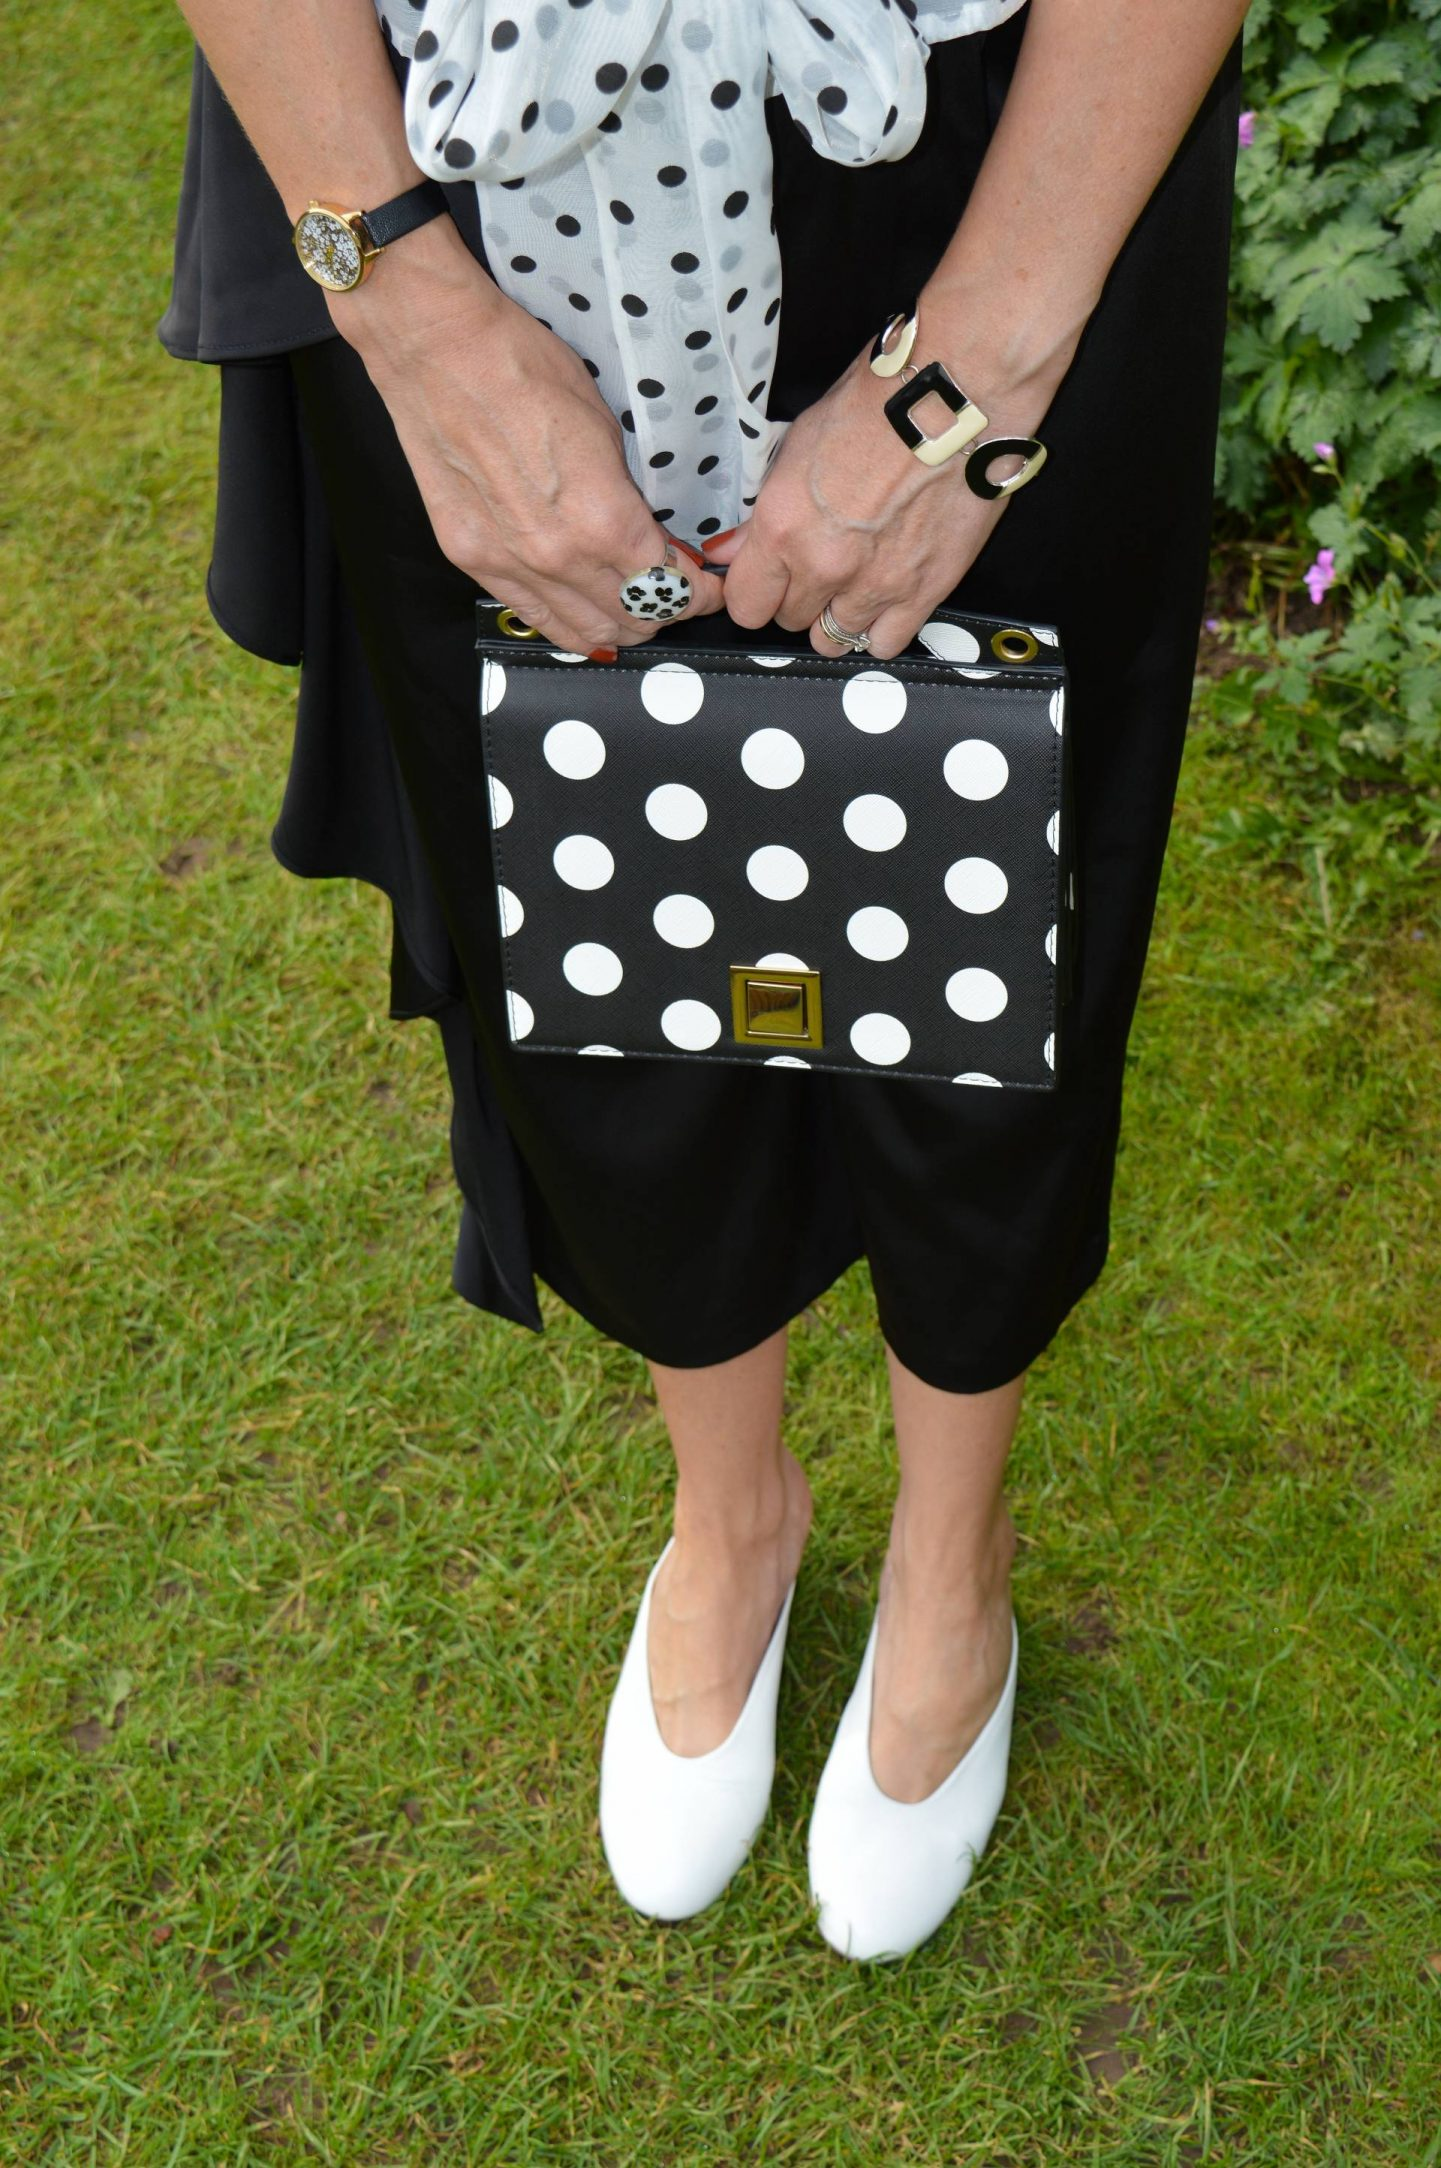 Mango polka dot bag, white preloved shoes